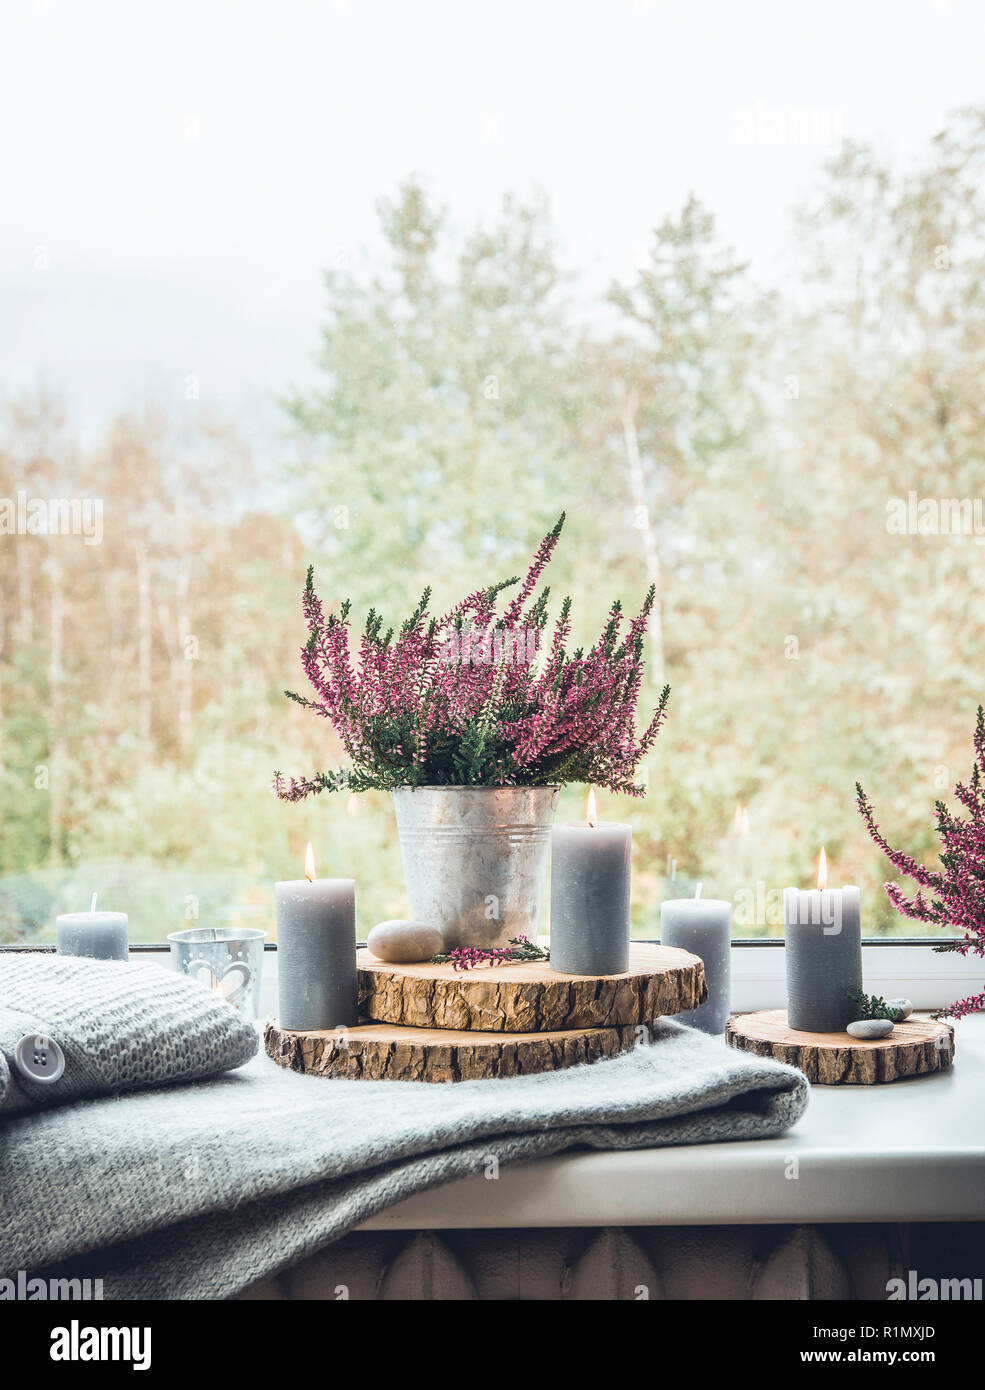 Ready For Autumn Common Heather Flower In Zinc Pot Home Decor Idea